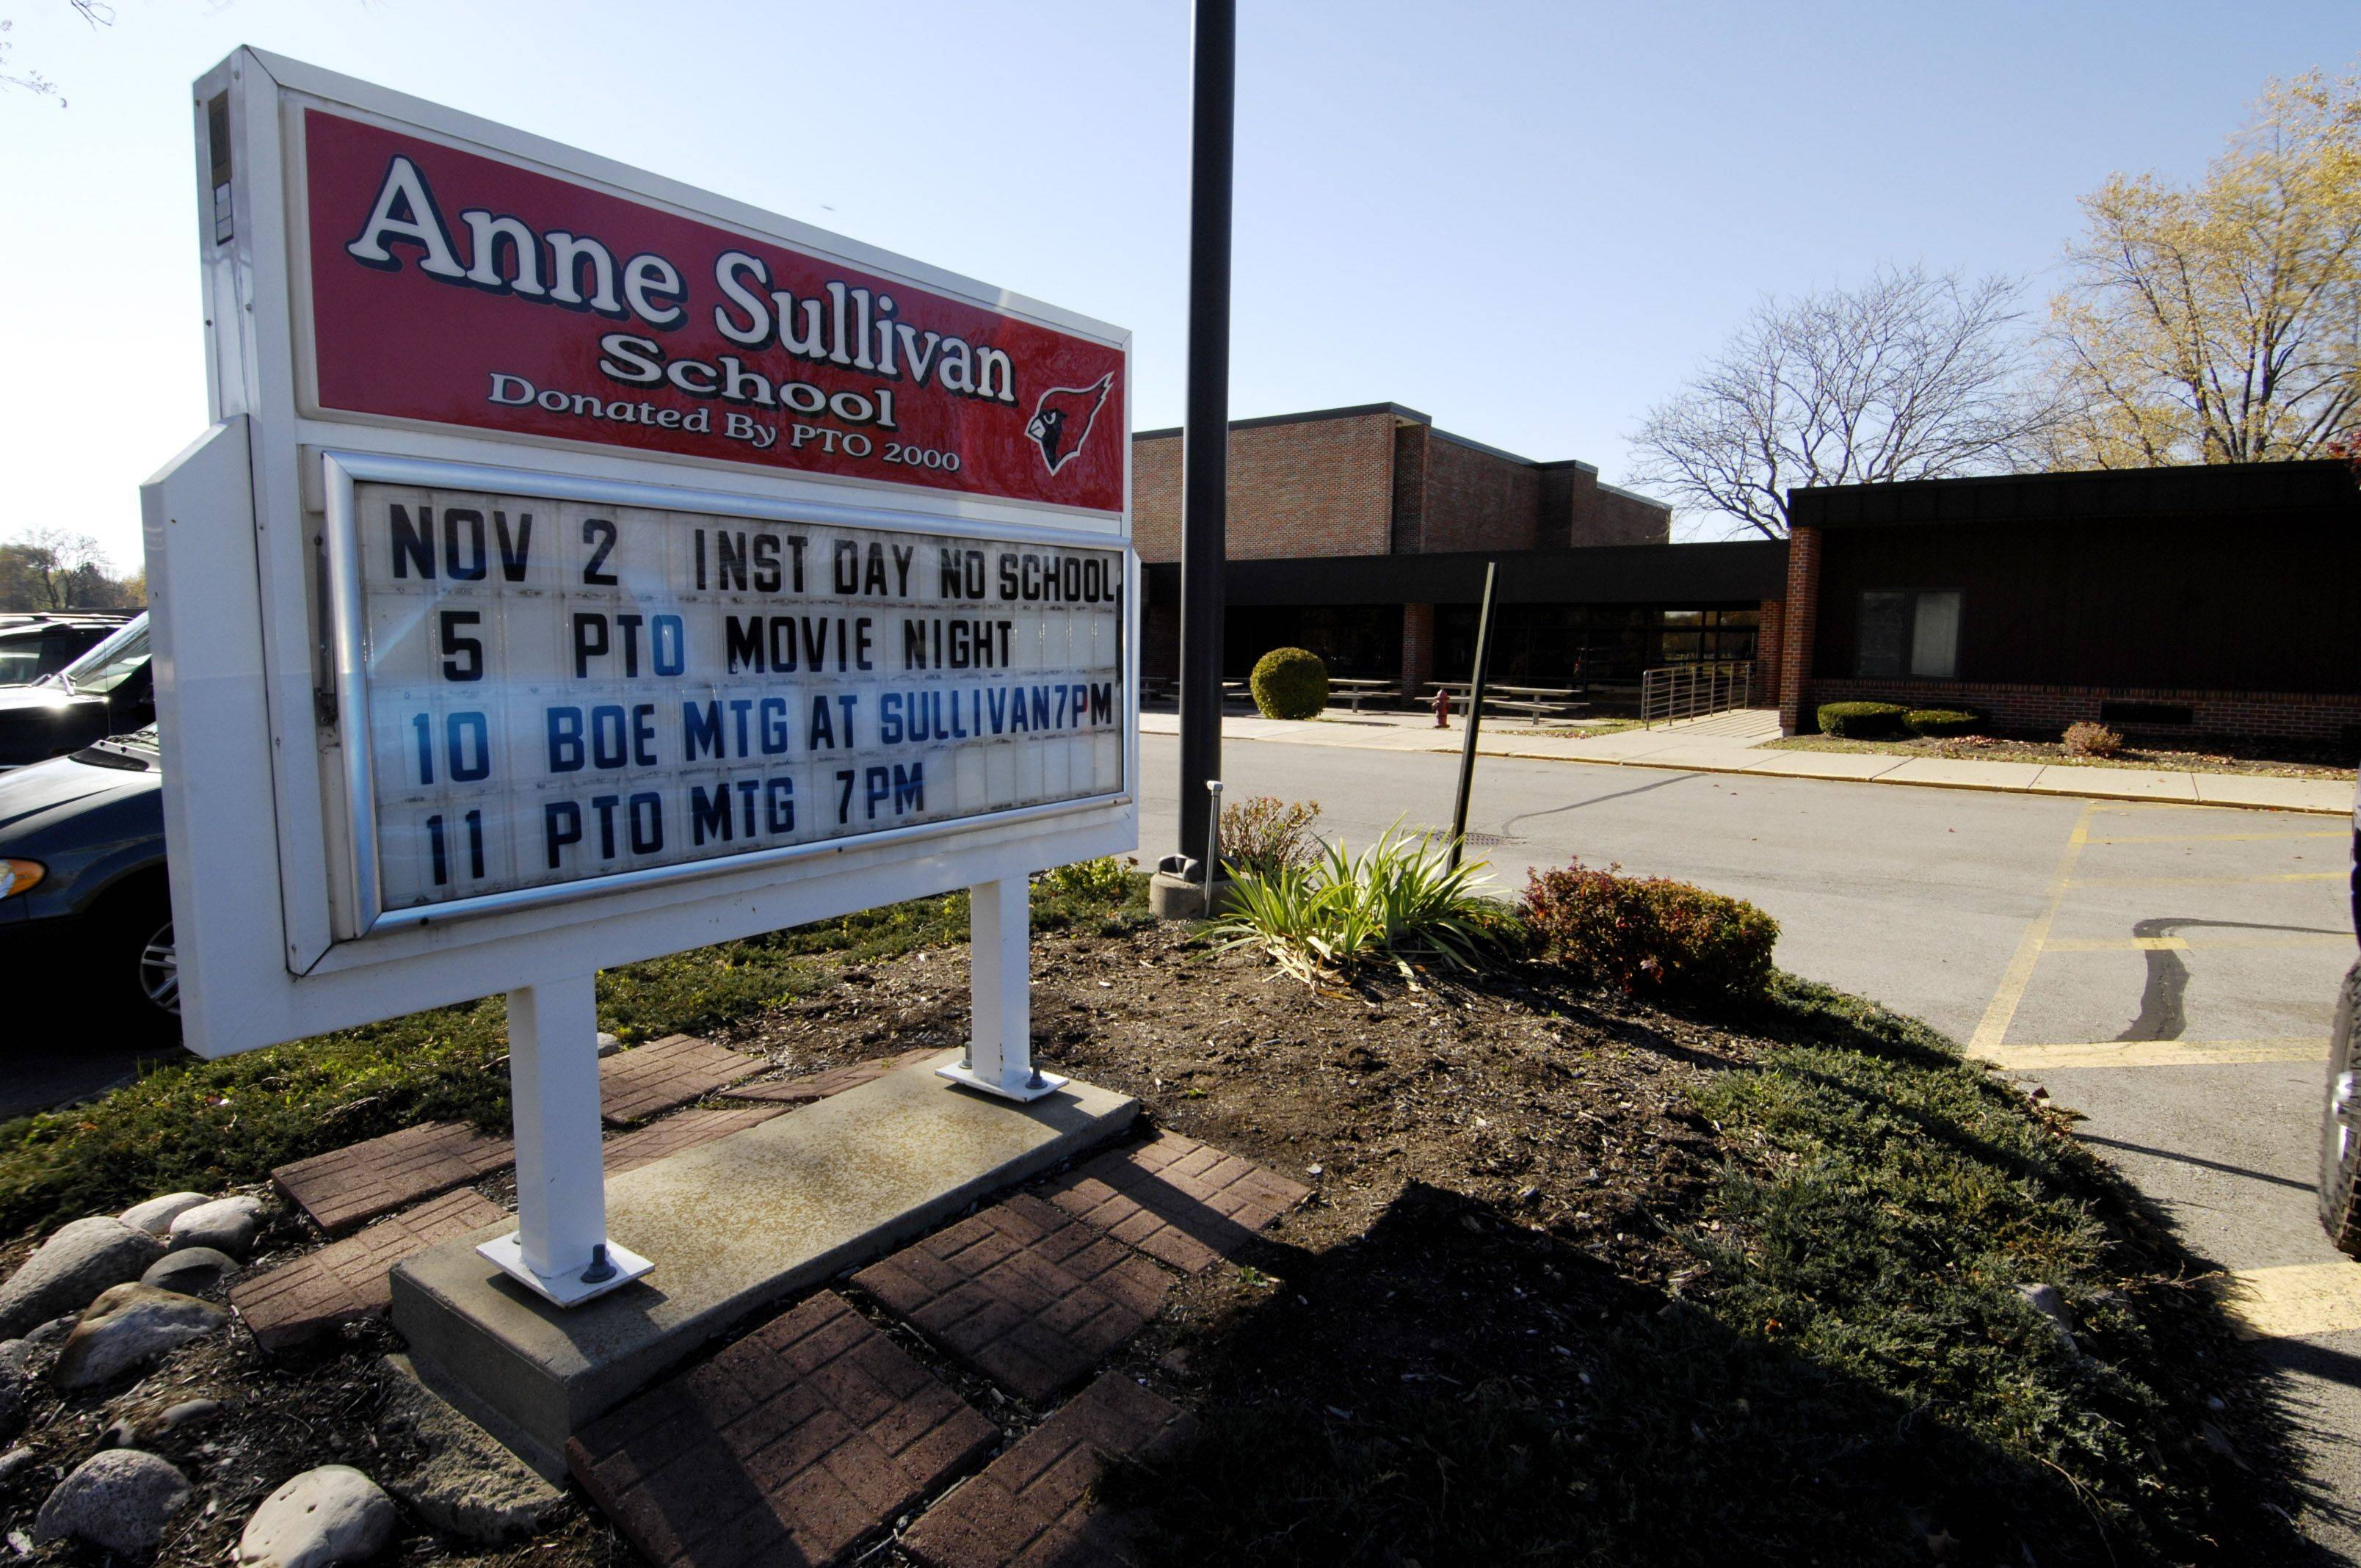 Anne Sullivan and Betsy Ross schools are connected by a hallway, and some parents wonder if making it one big school would save significant administrative costs.